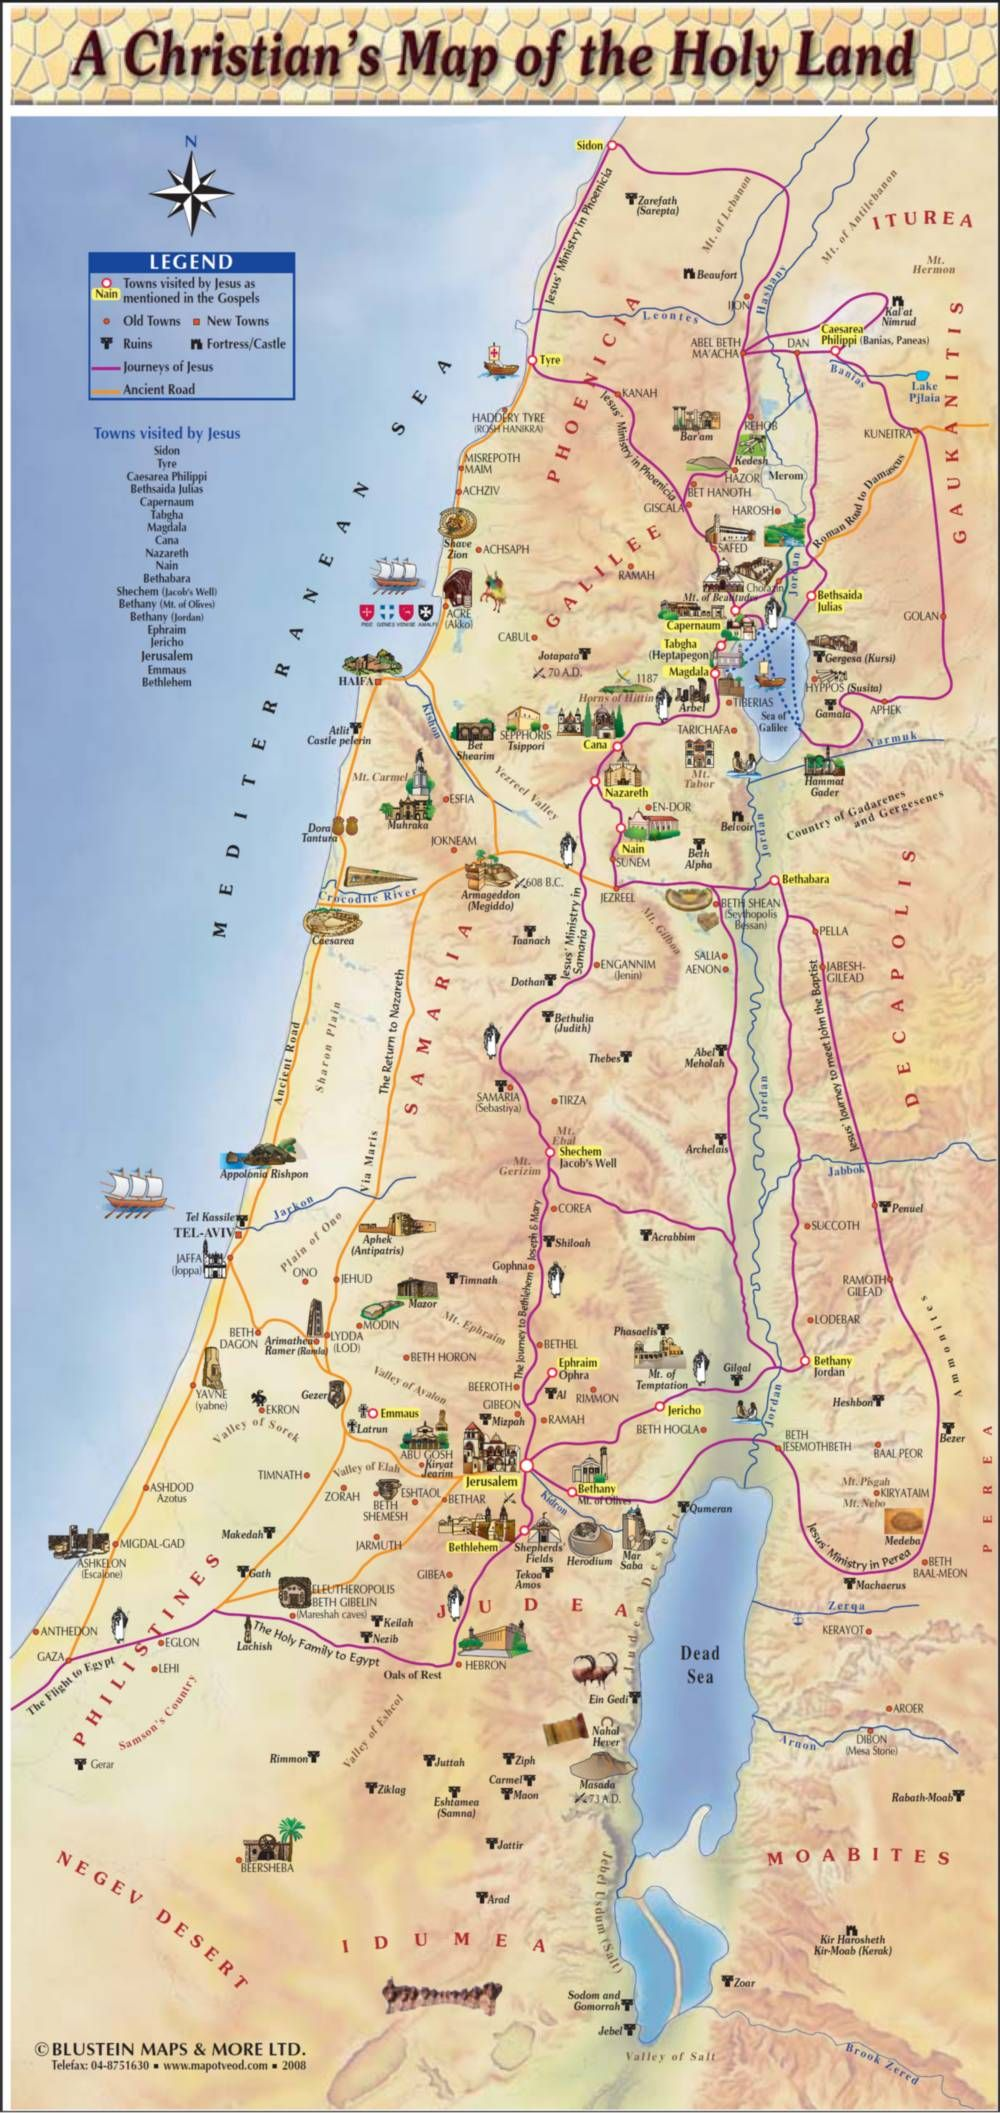 a christian's map of the holy land. history books  israel bible and pilgrimage